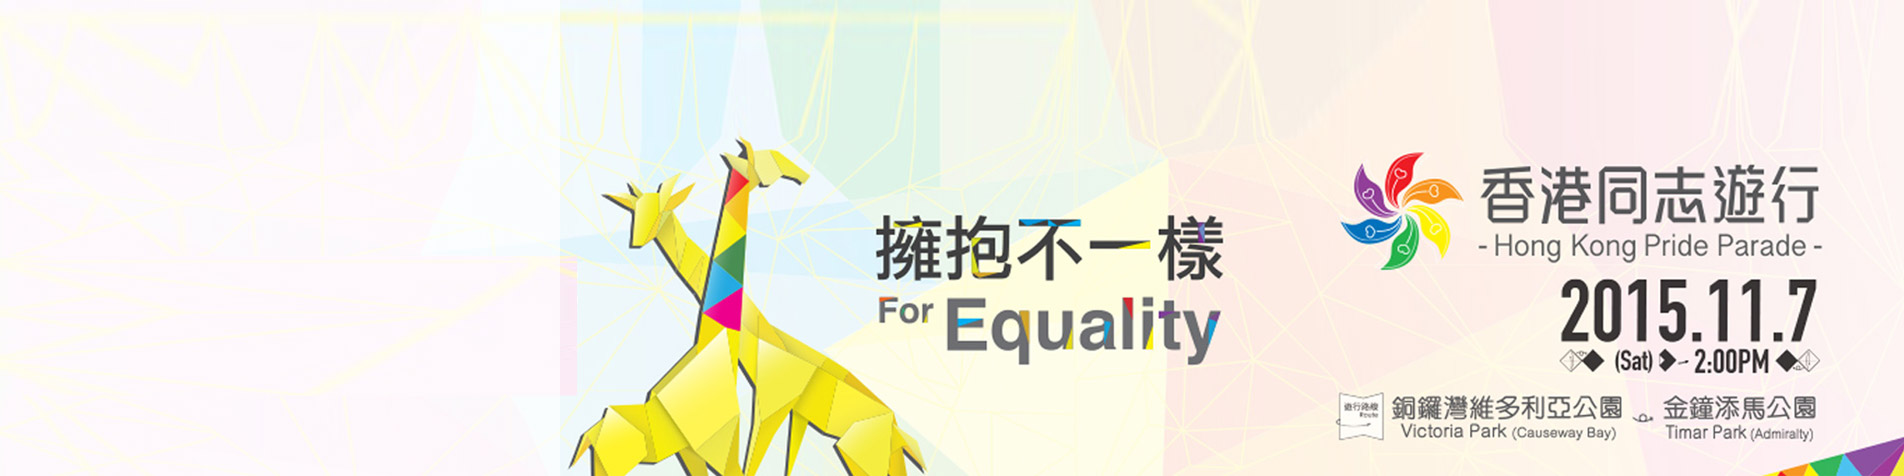 The Hong Kong Pride Parade - A Courageous step towards Equality in Hong Kong